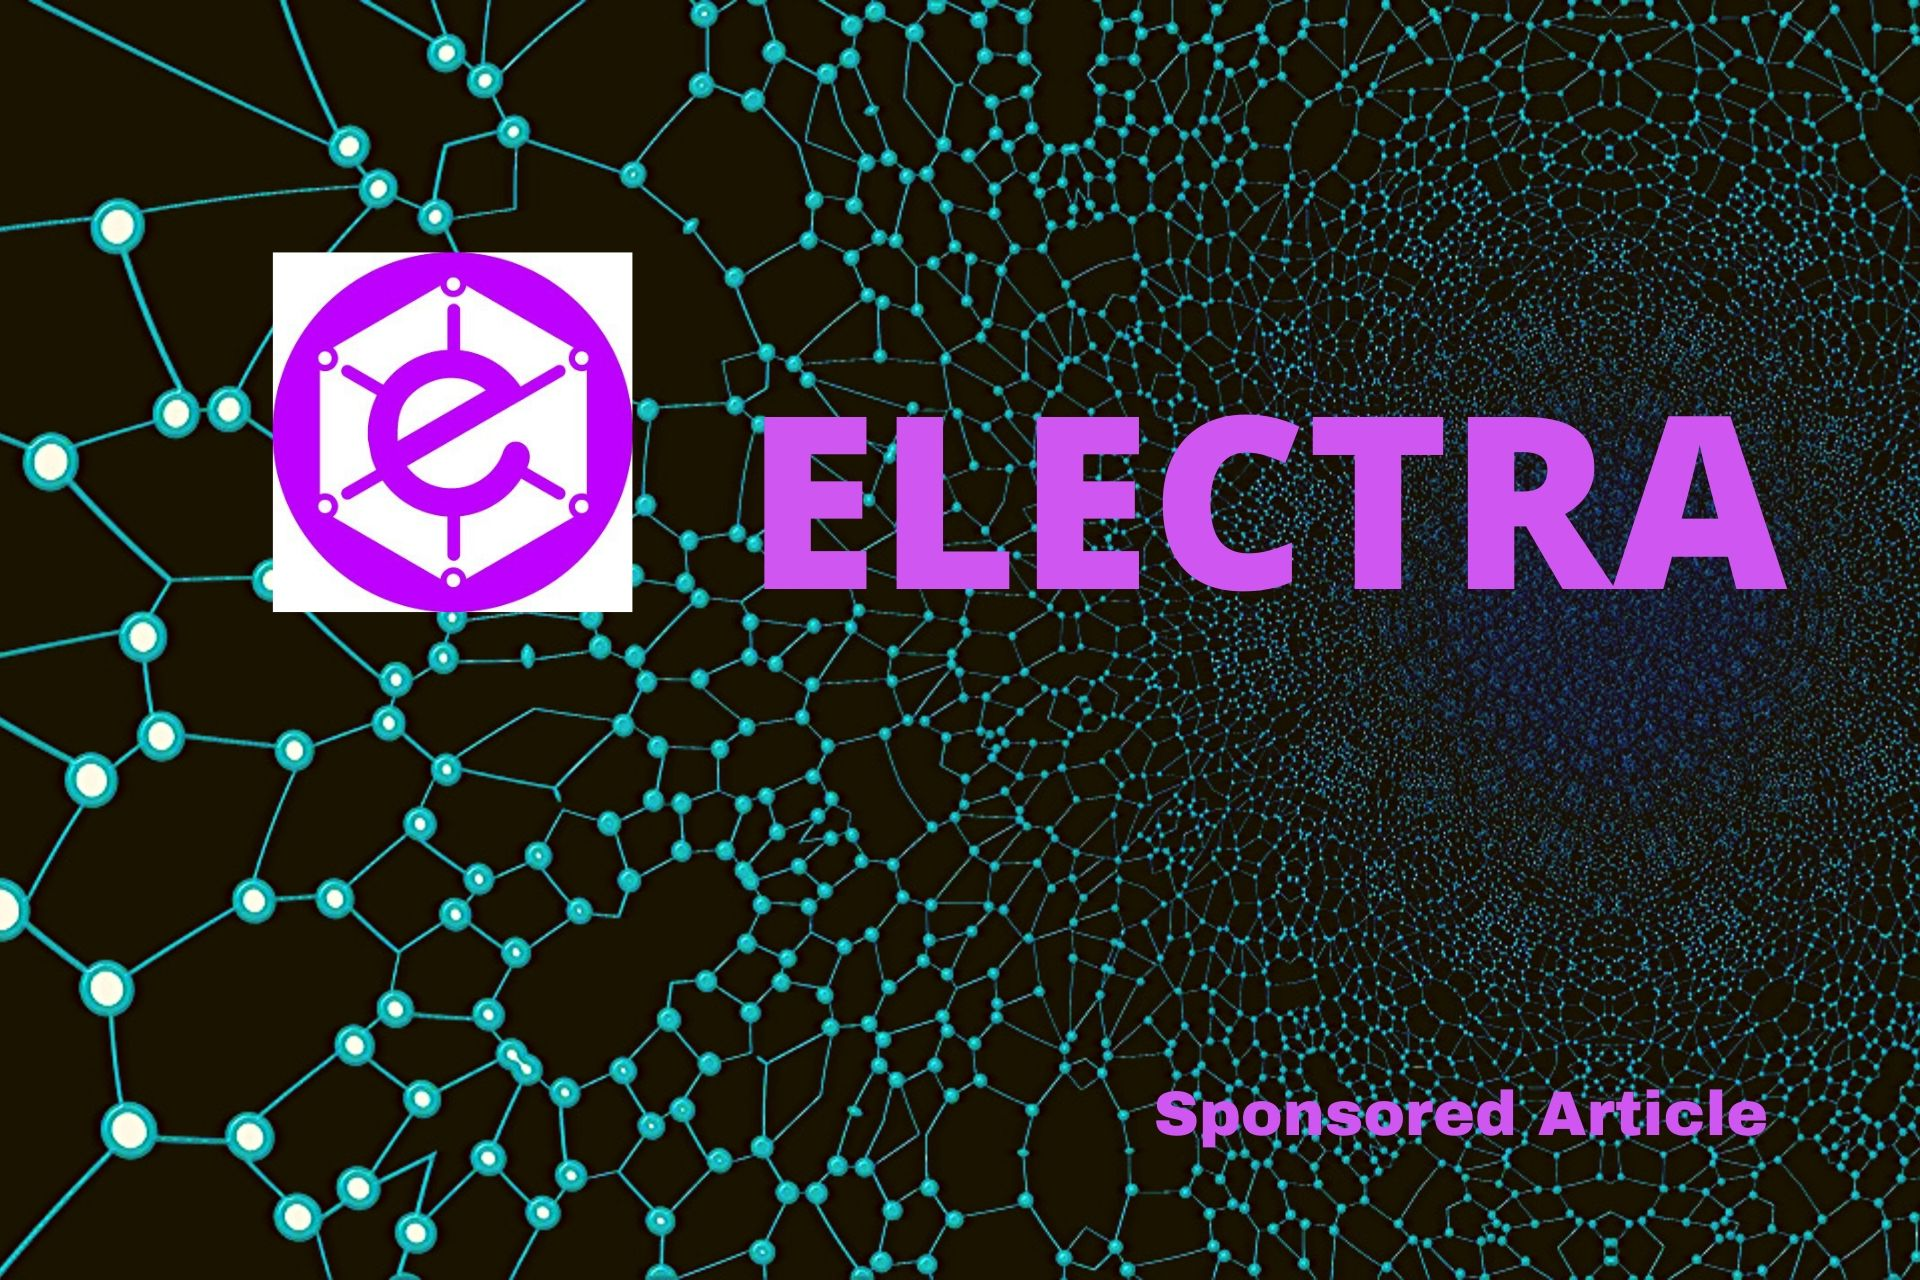 Electra project